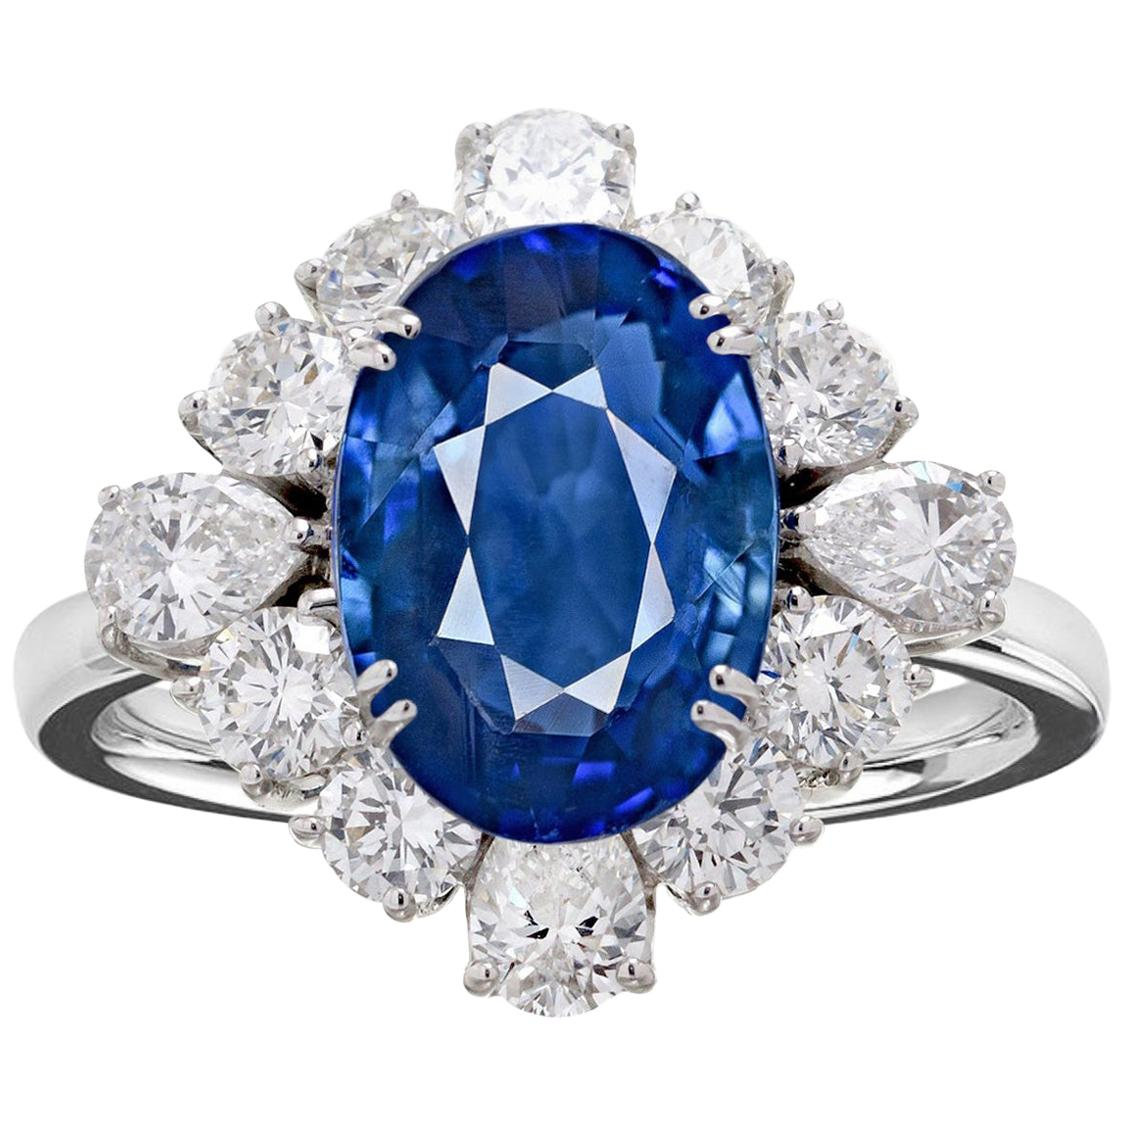 Exceptional GRS Certified 3 Carat Sri-Lanka Blue Sapphire Cocktail Ring